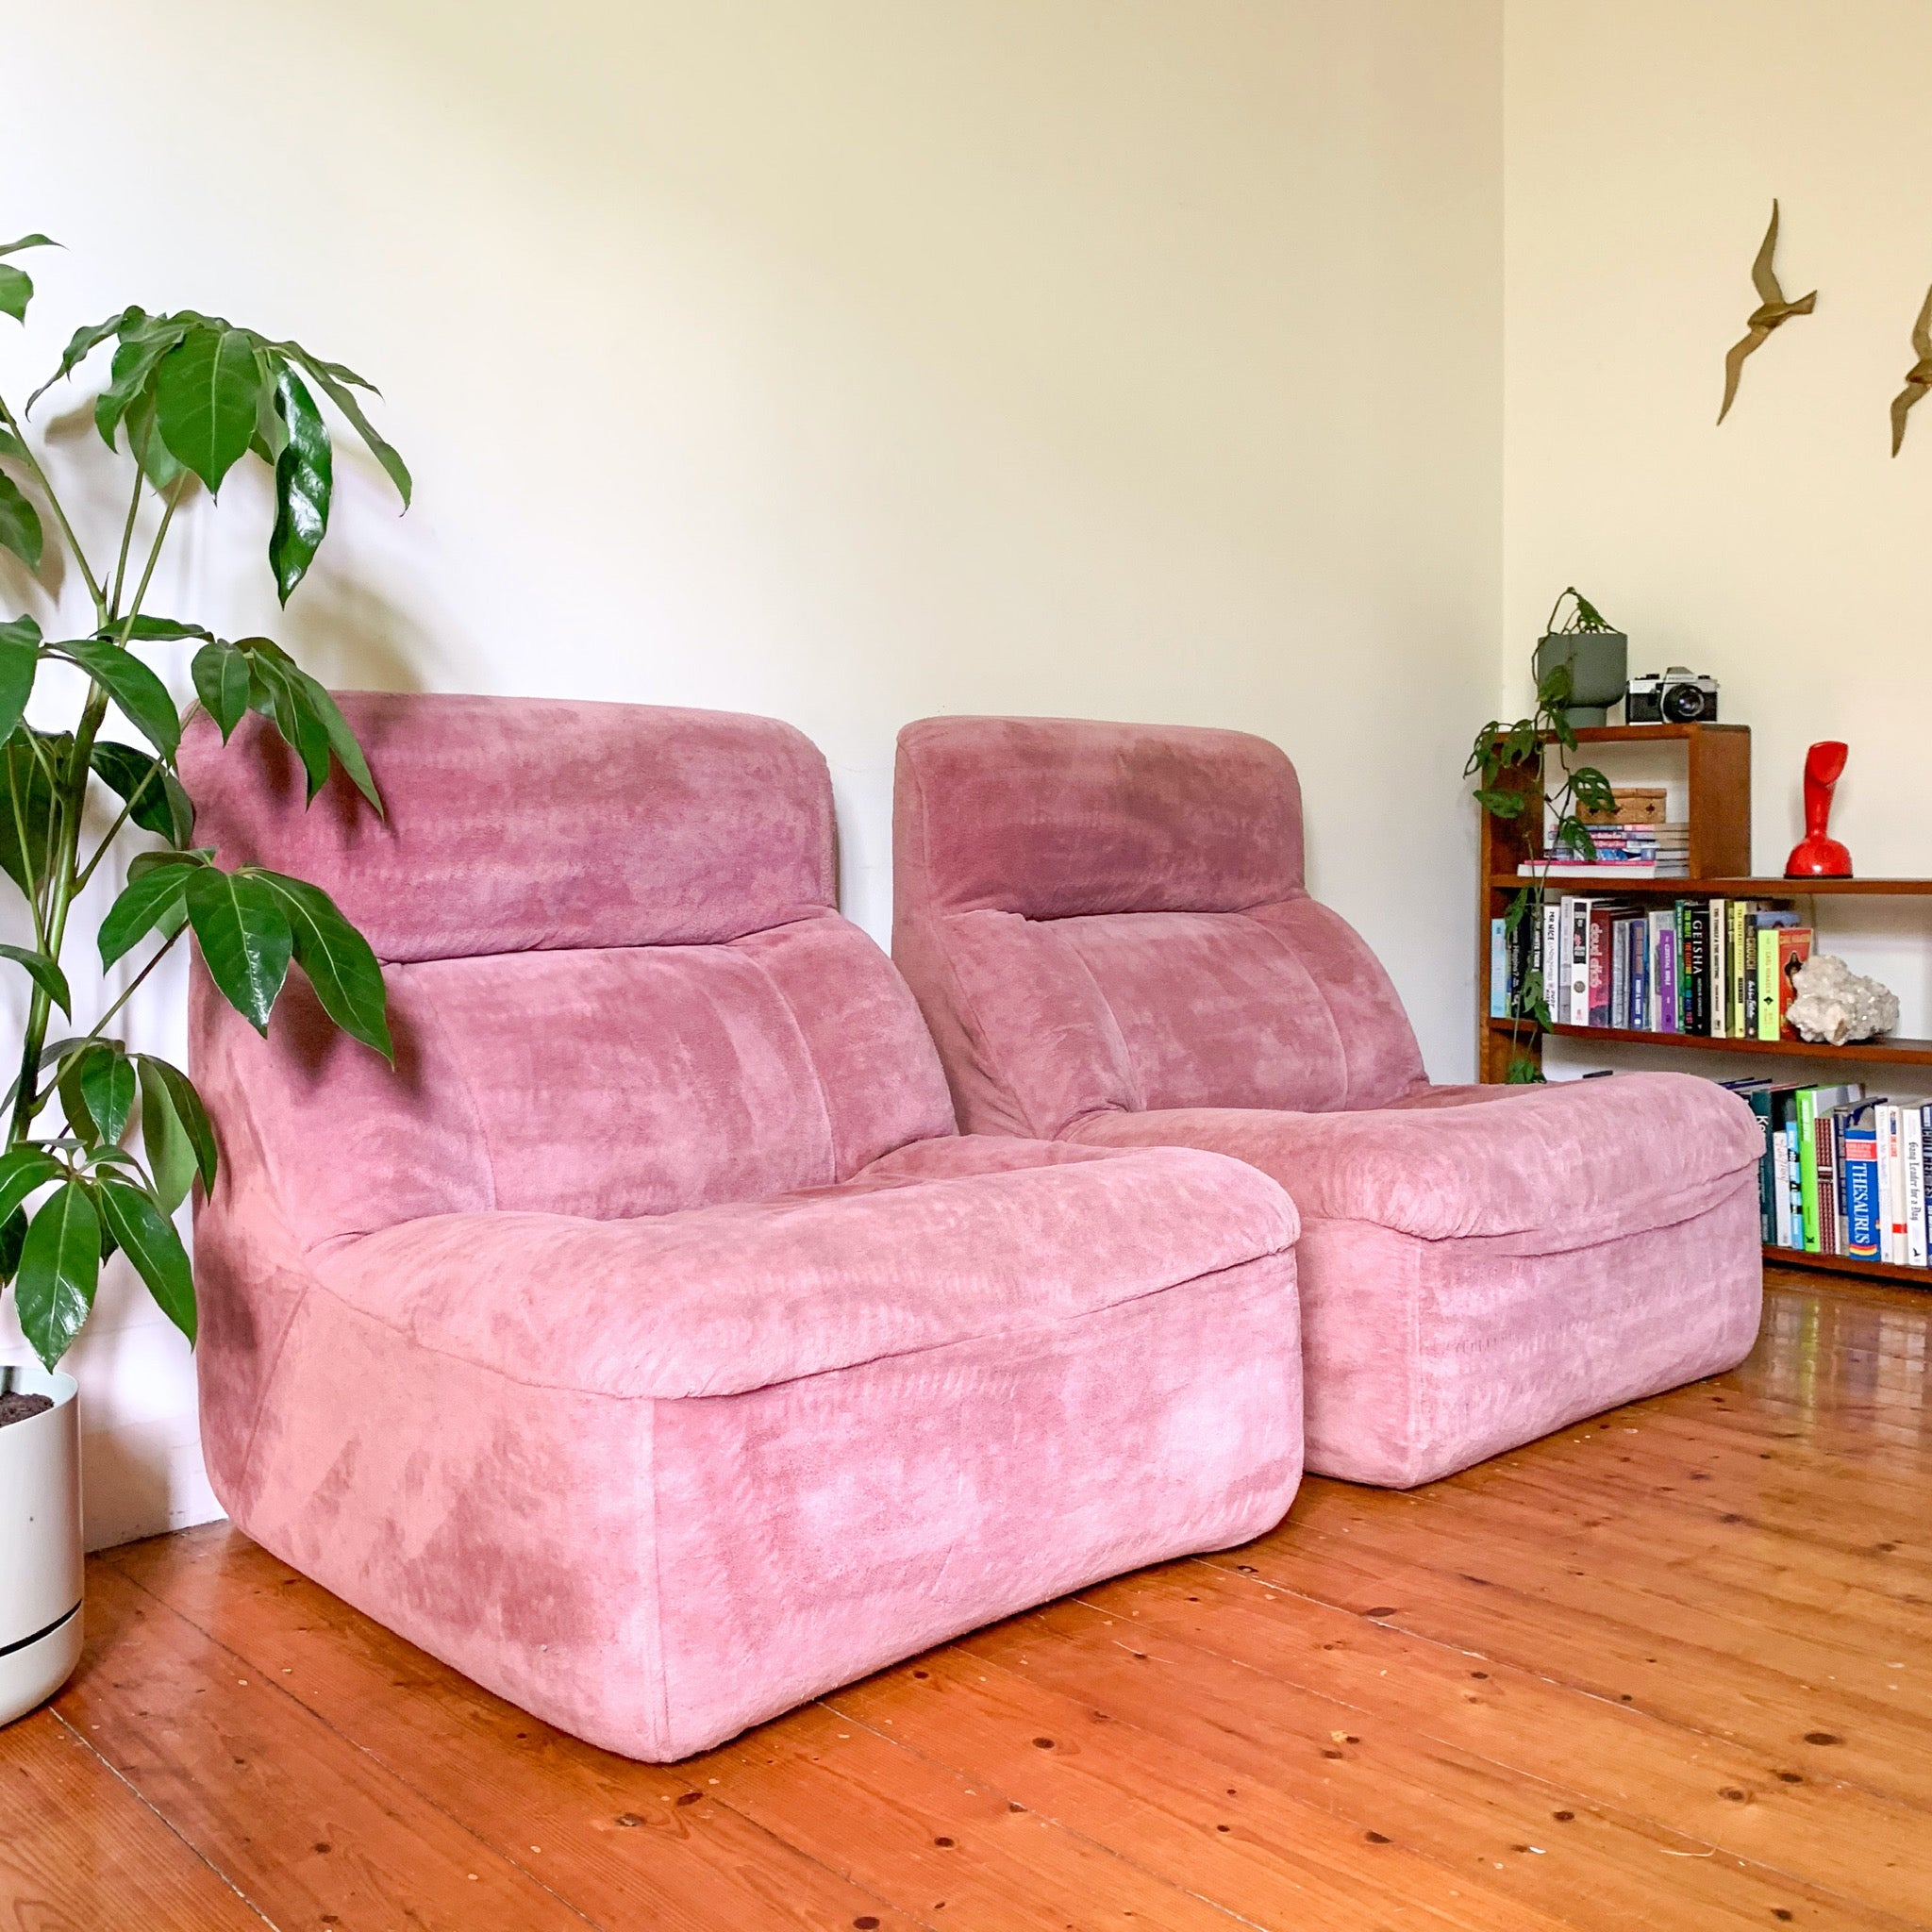 UNIROYAL MODULAR CHAIRS BUBBLEGUM PINK - HEY JUDE WORKSHOP • Vintage furniture & wares.